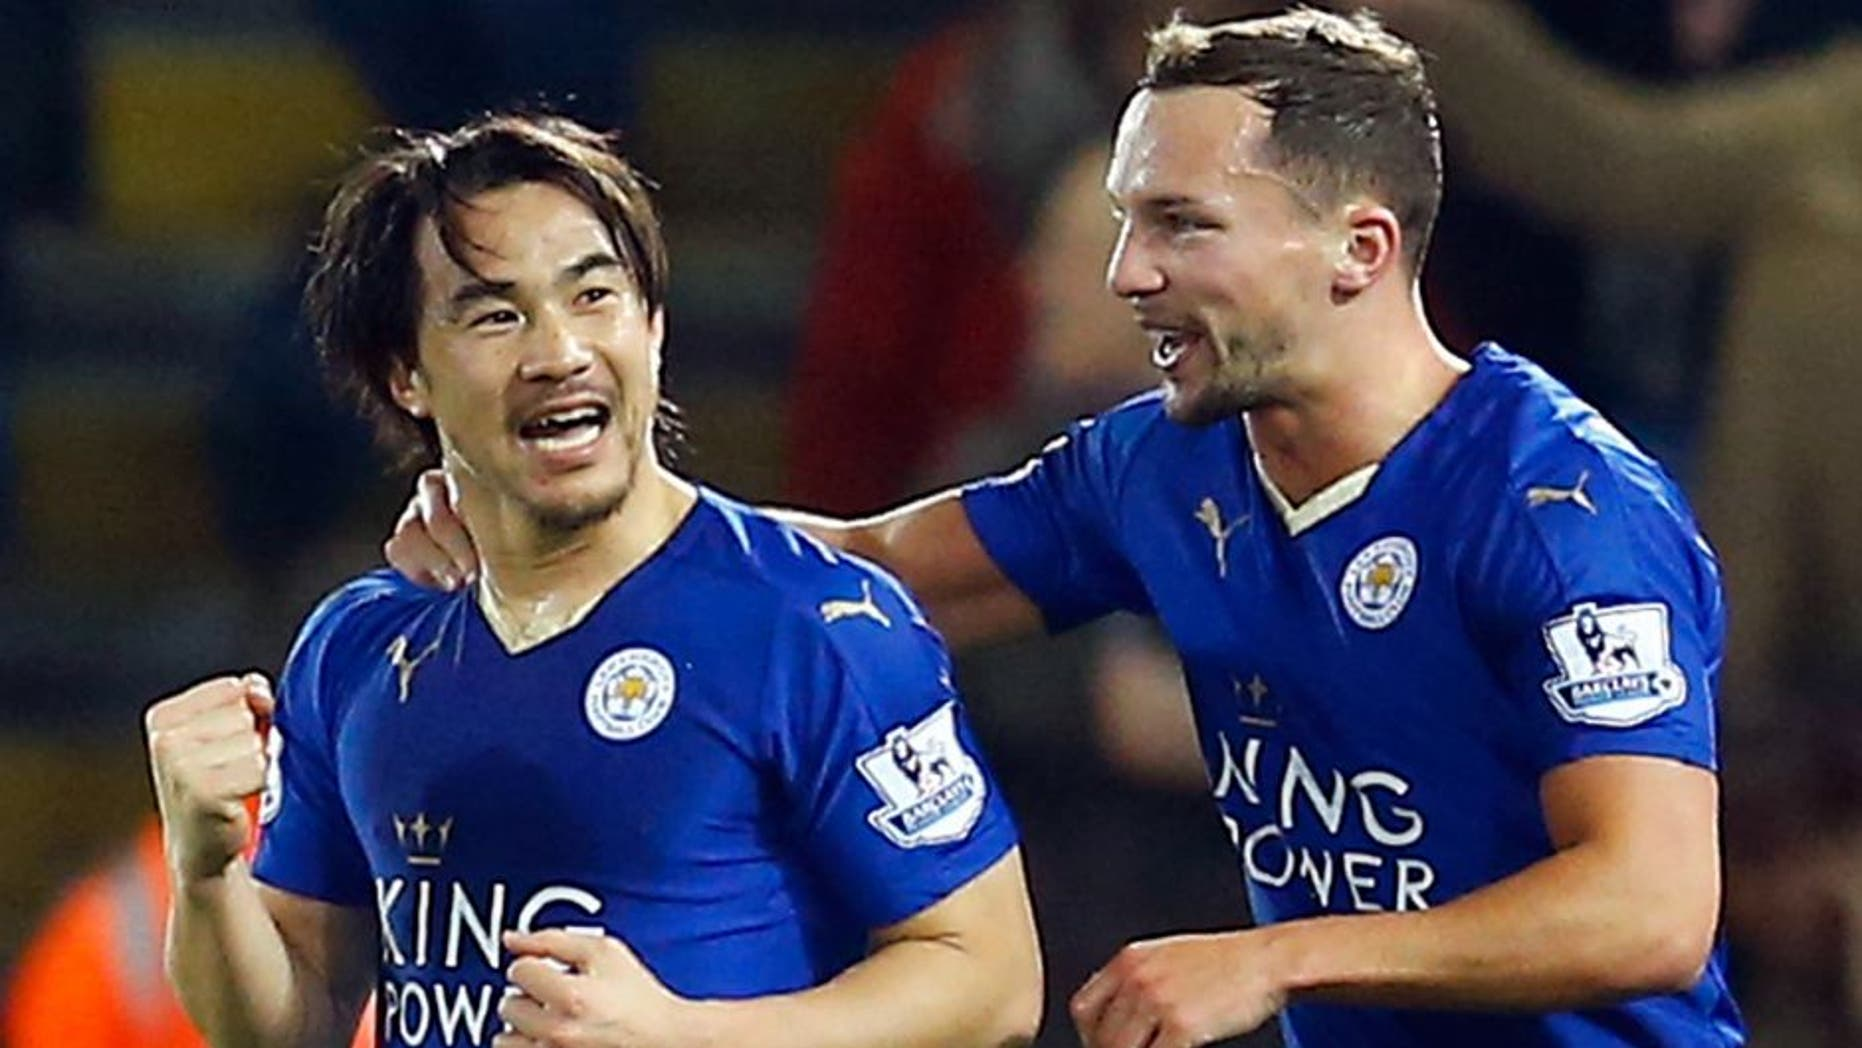 """Football Soccer - Leicester City v Newcastle United - Barclays Premier League - King Power Stadium - 14/3/16 Shinji Okazaki celebrates scoring the first goal for Leicester City with Danny Drinkwater Reuters / Darren Staples Livepic EDITORIAL USE ONLY. No use with unauthorized audio, video, data, fixture lists, club/league logos or """"live"""" services. Online in-match use limited to 45 images, no video emulation. No use in betting, games or single club/league/player publications. Please contact your account representative for further details."""